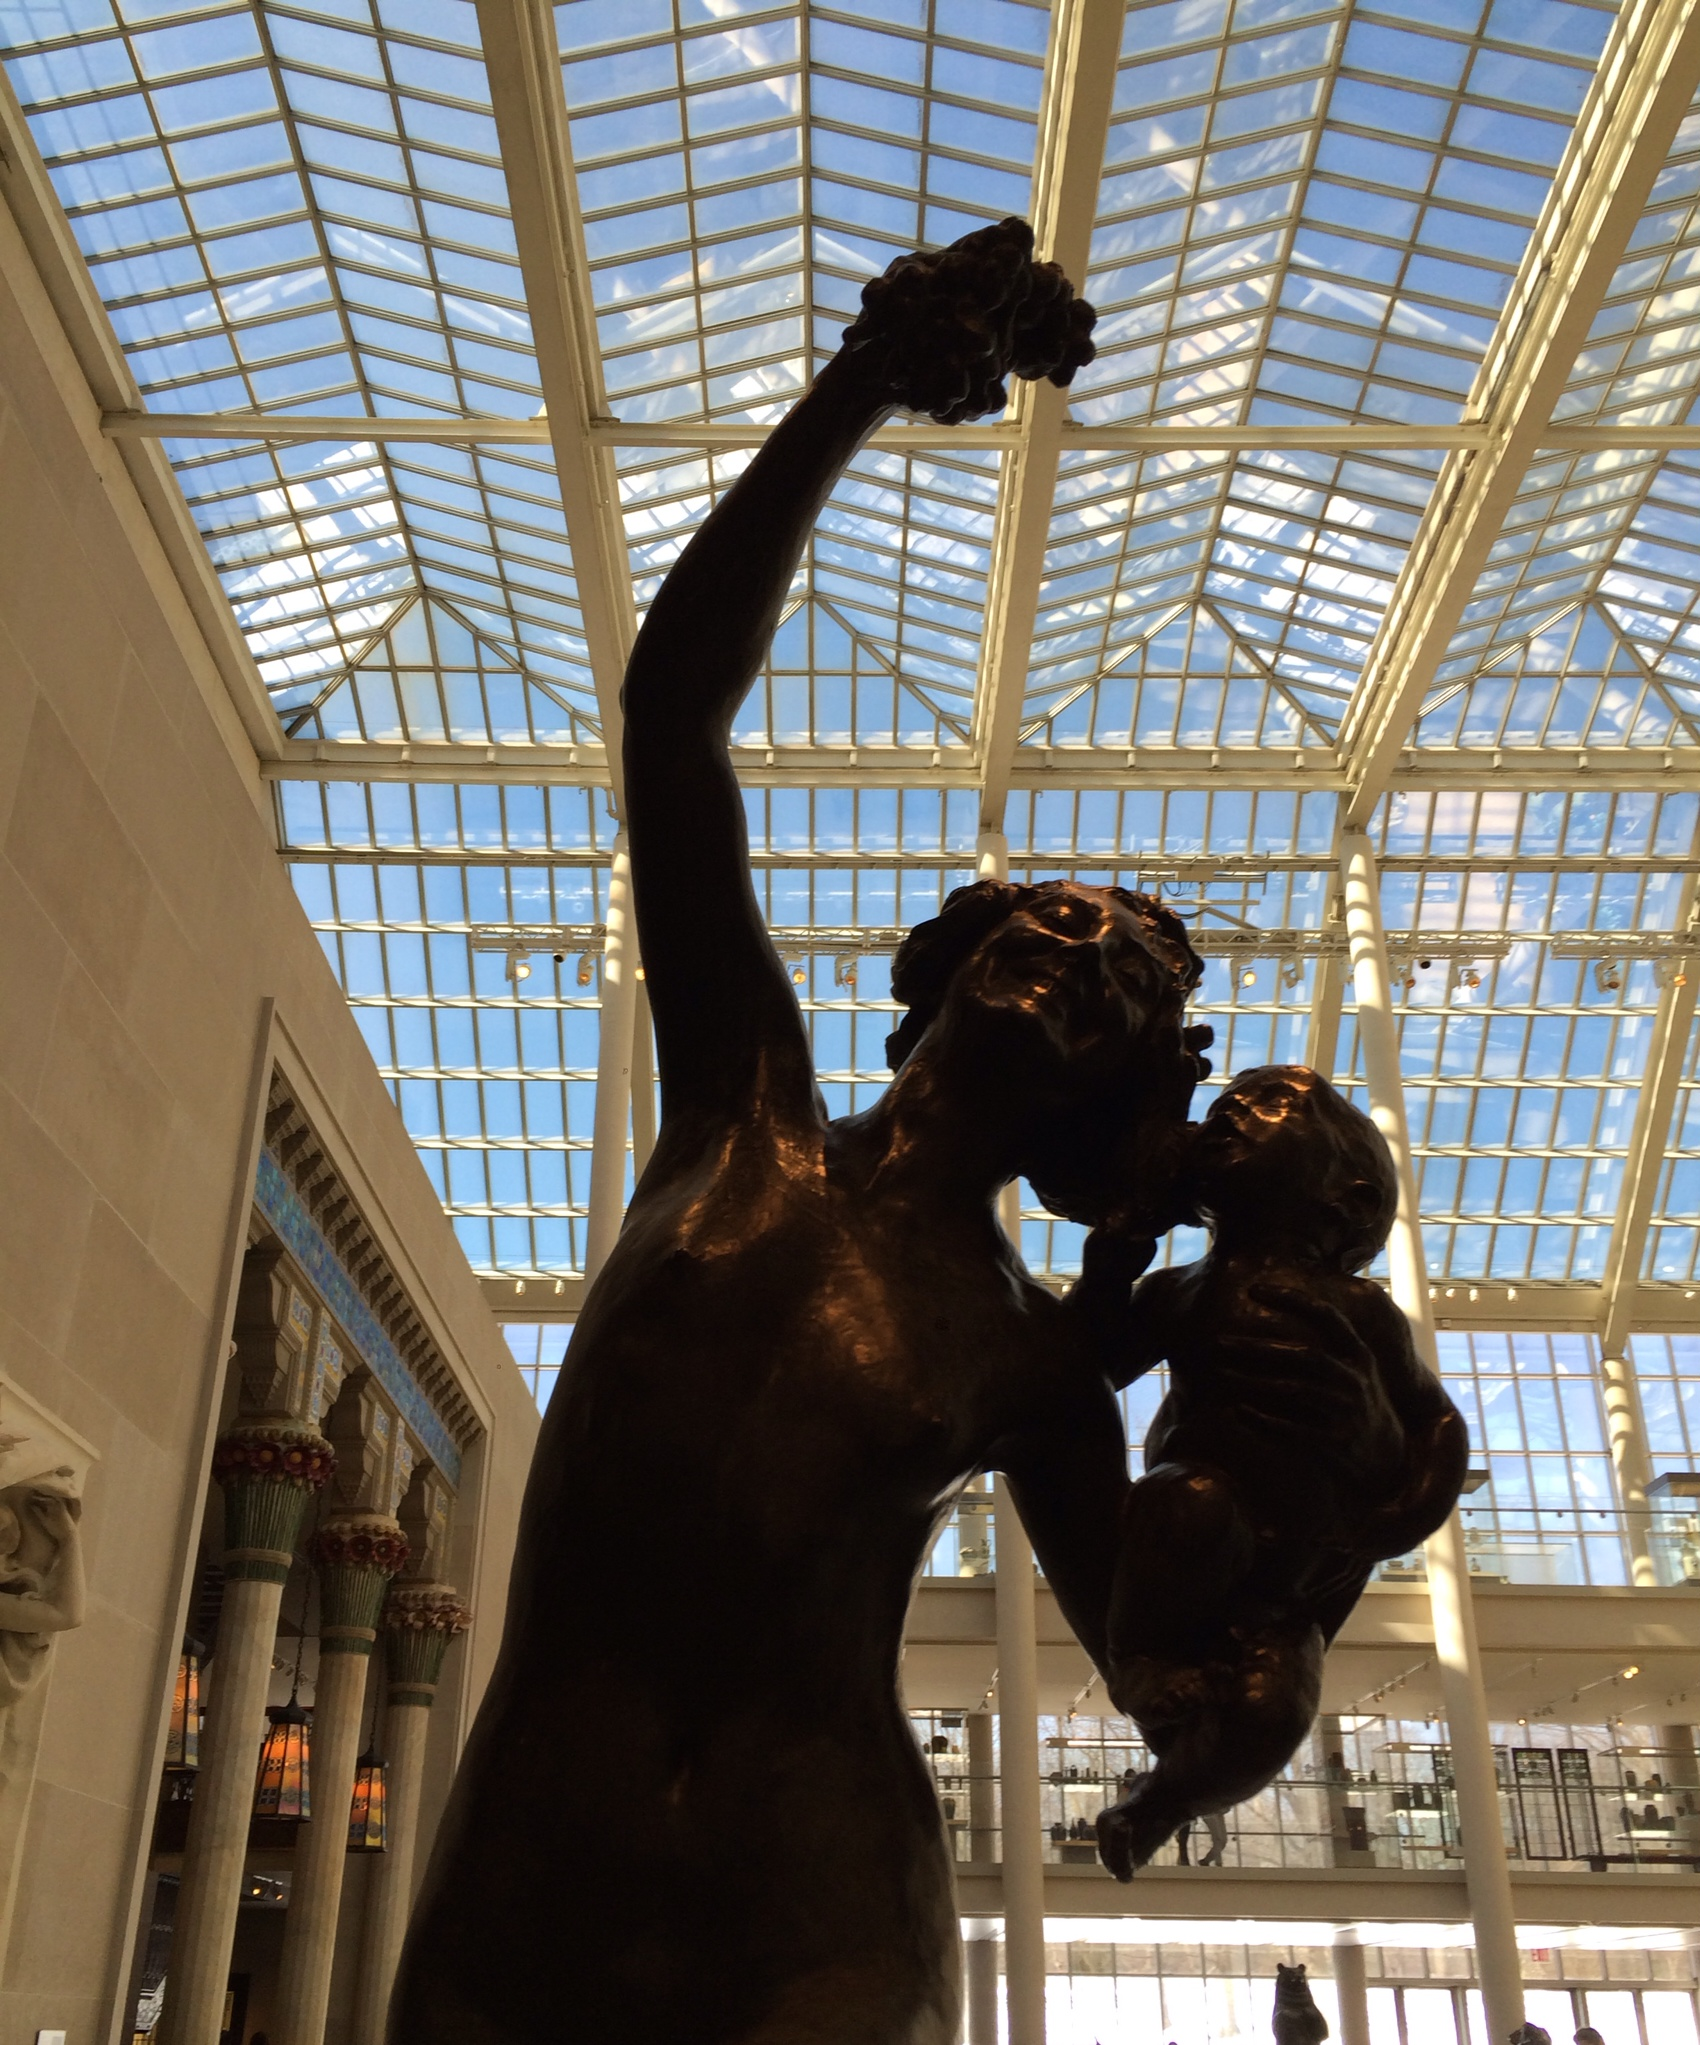 Frederick William McMonnies' Bacchante and Infant Faun, American Wing - The Charles Engelhard Court, The Met